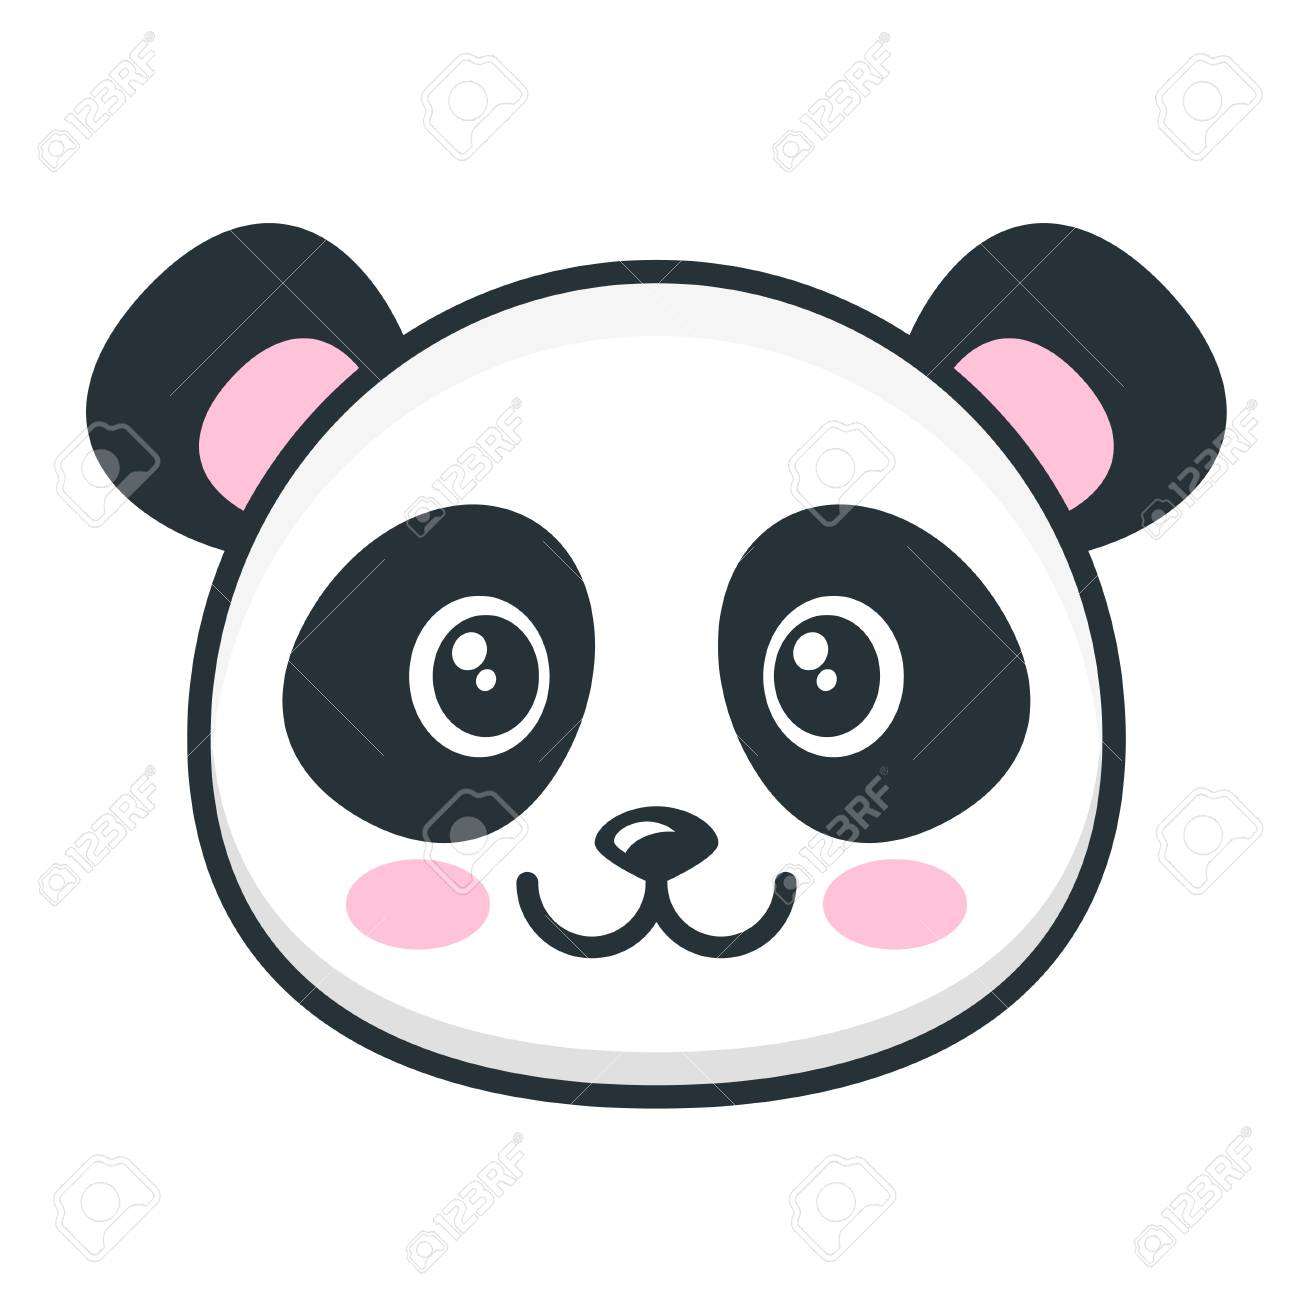 Cute panda face isolated on white - 108953289